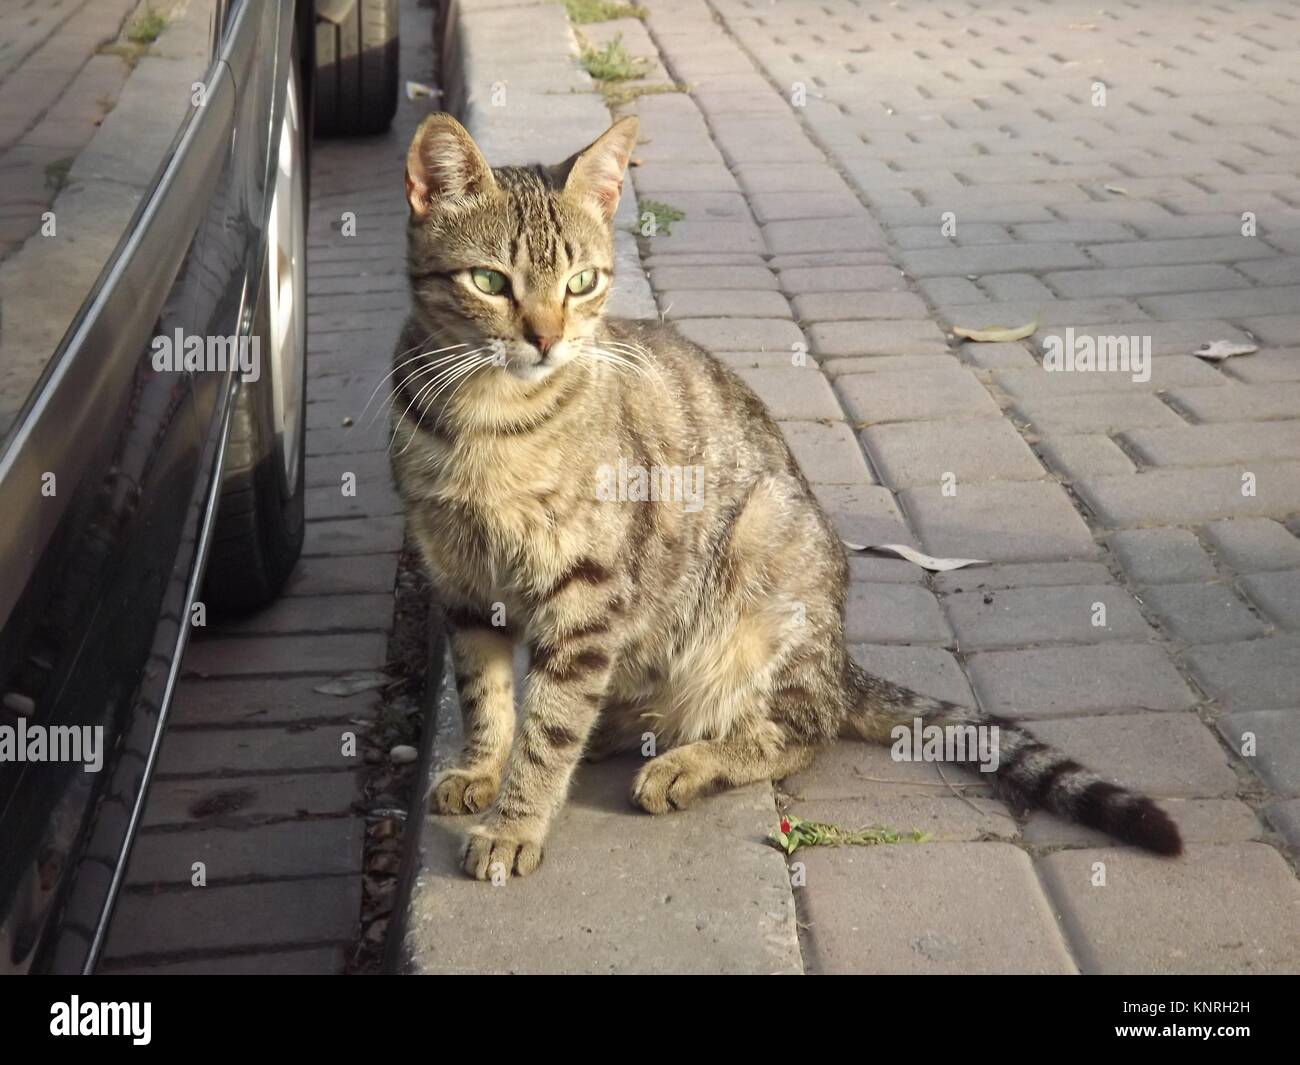 Beautiful cat on the streets of Tanger, Morocco Stock Photo